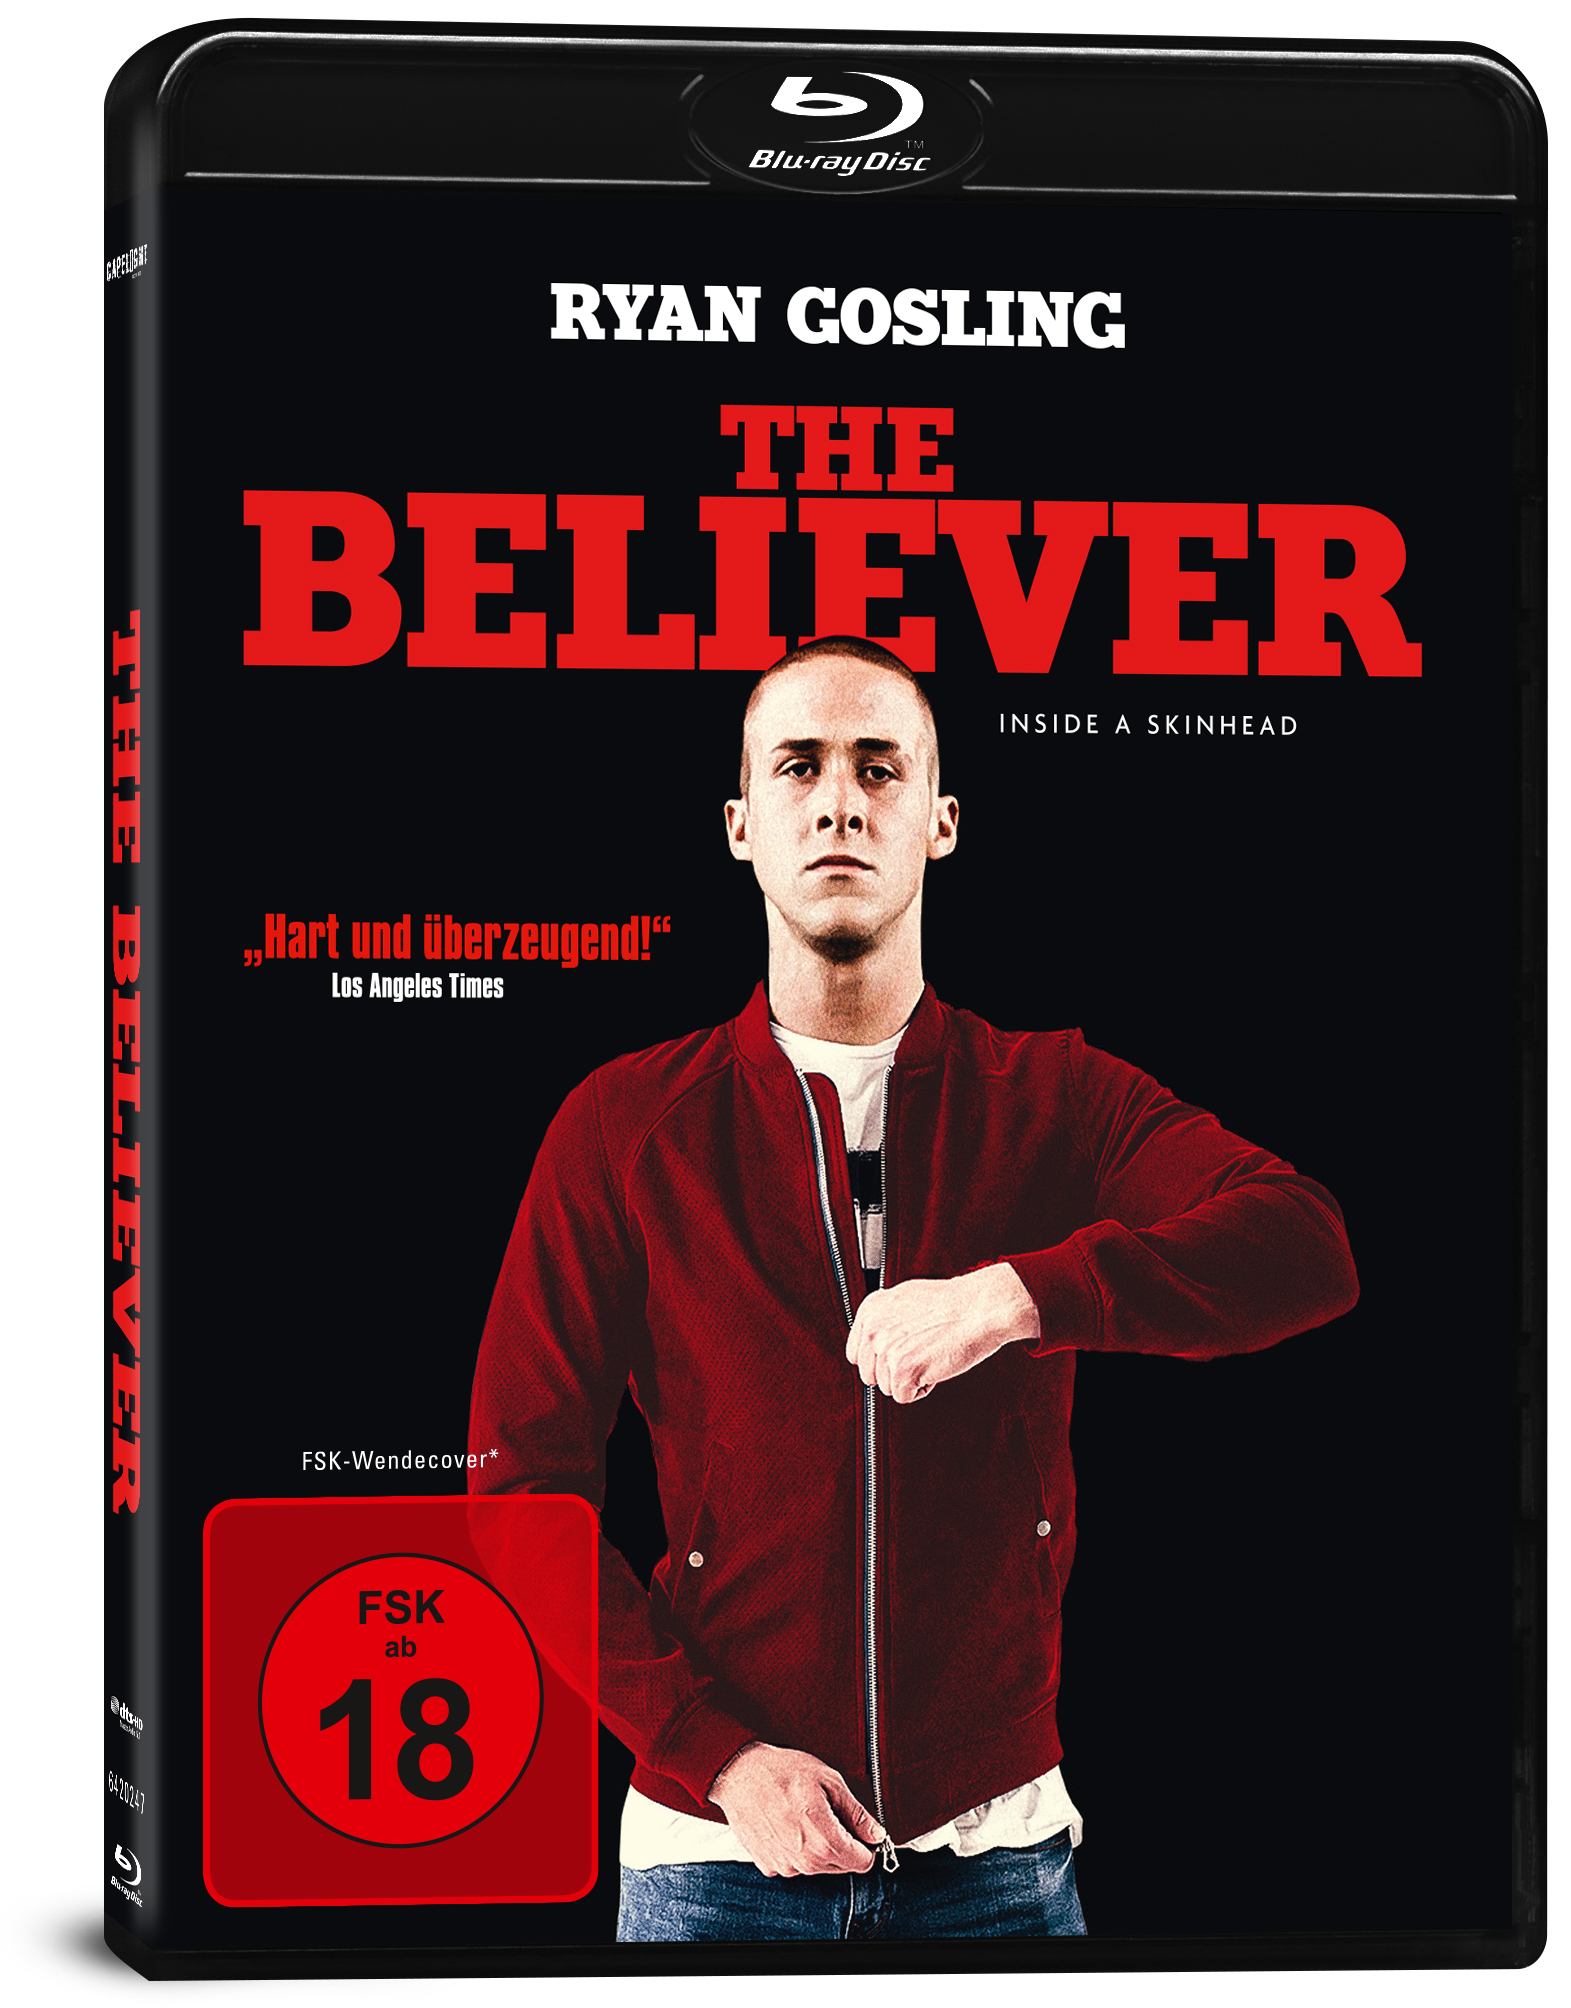 The Believer - Inside A Skinhead | GESAMTKATALOG